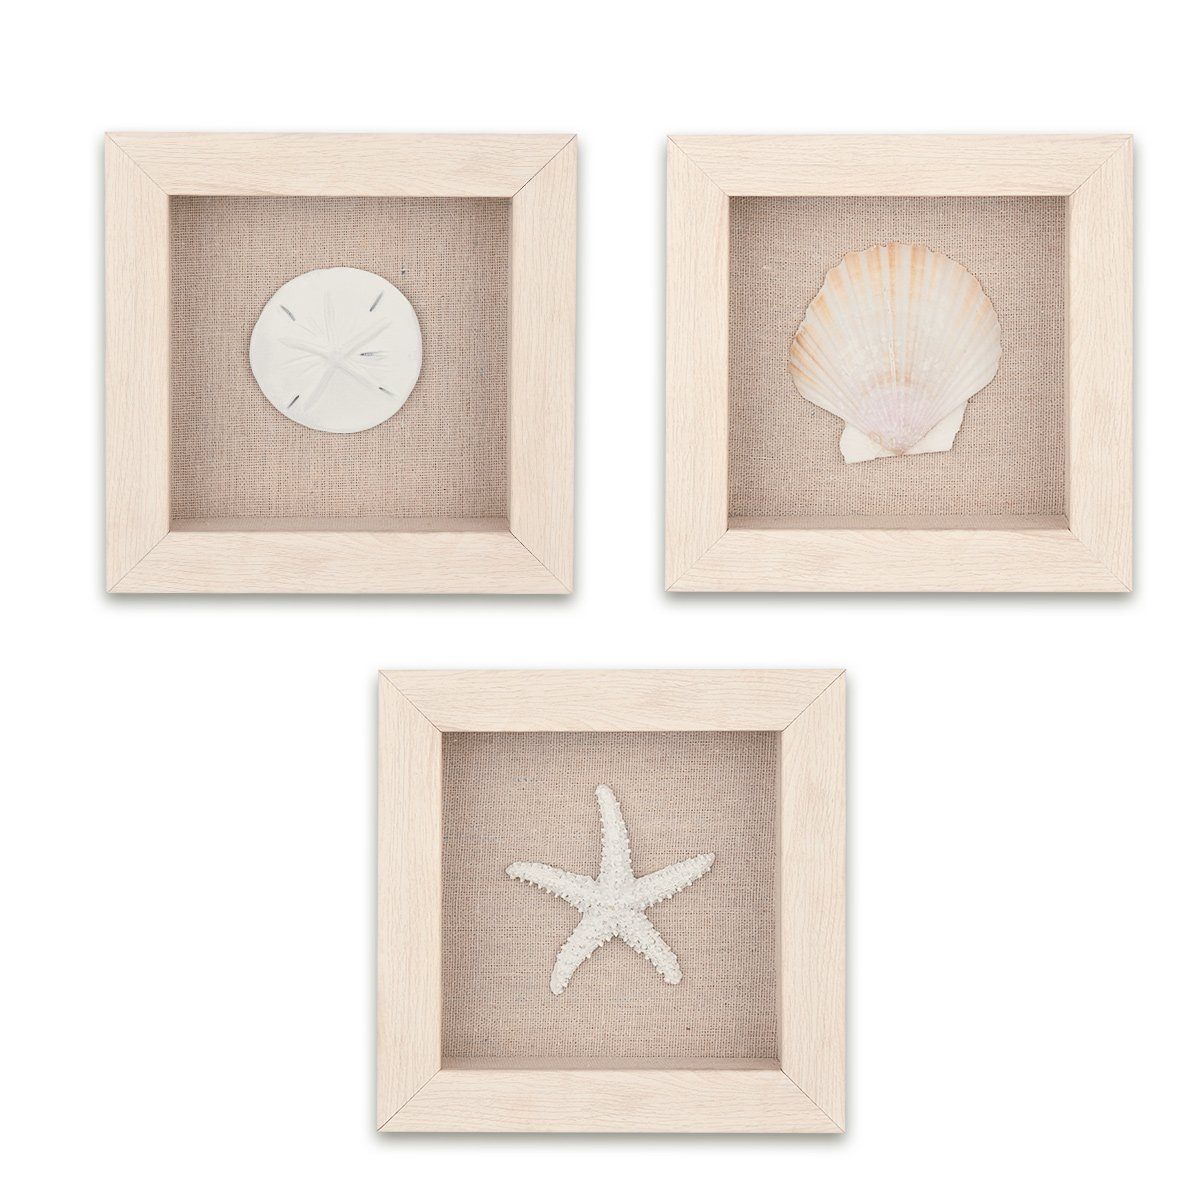 Home-Man Shadow Box Art Wall Decor, 3 Sealife Shadow Boxes Wall Art - Starfish, Seashell, Sand Dollar, Marine Organism Decorative Shadow Box Frame, Set of 3 by Home-Man